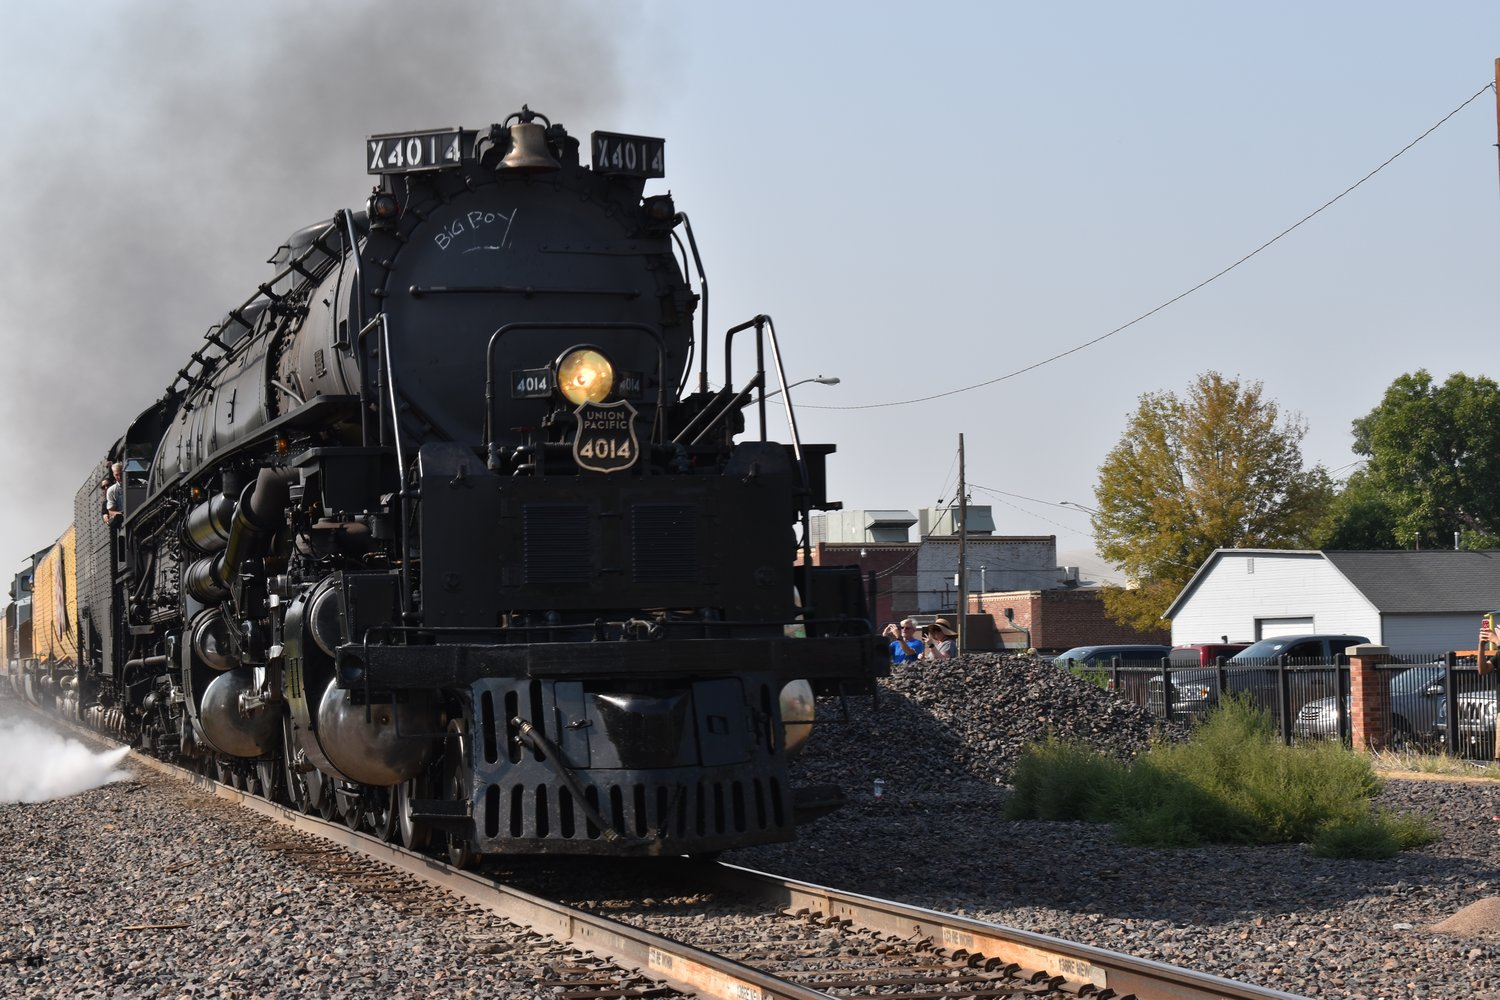 Big Boy was built for Union Pacific in 1941 and is now the only steam locomotive of its kind still in operation. The other seven are kept in museums.